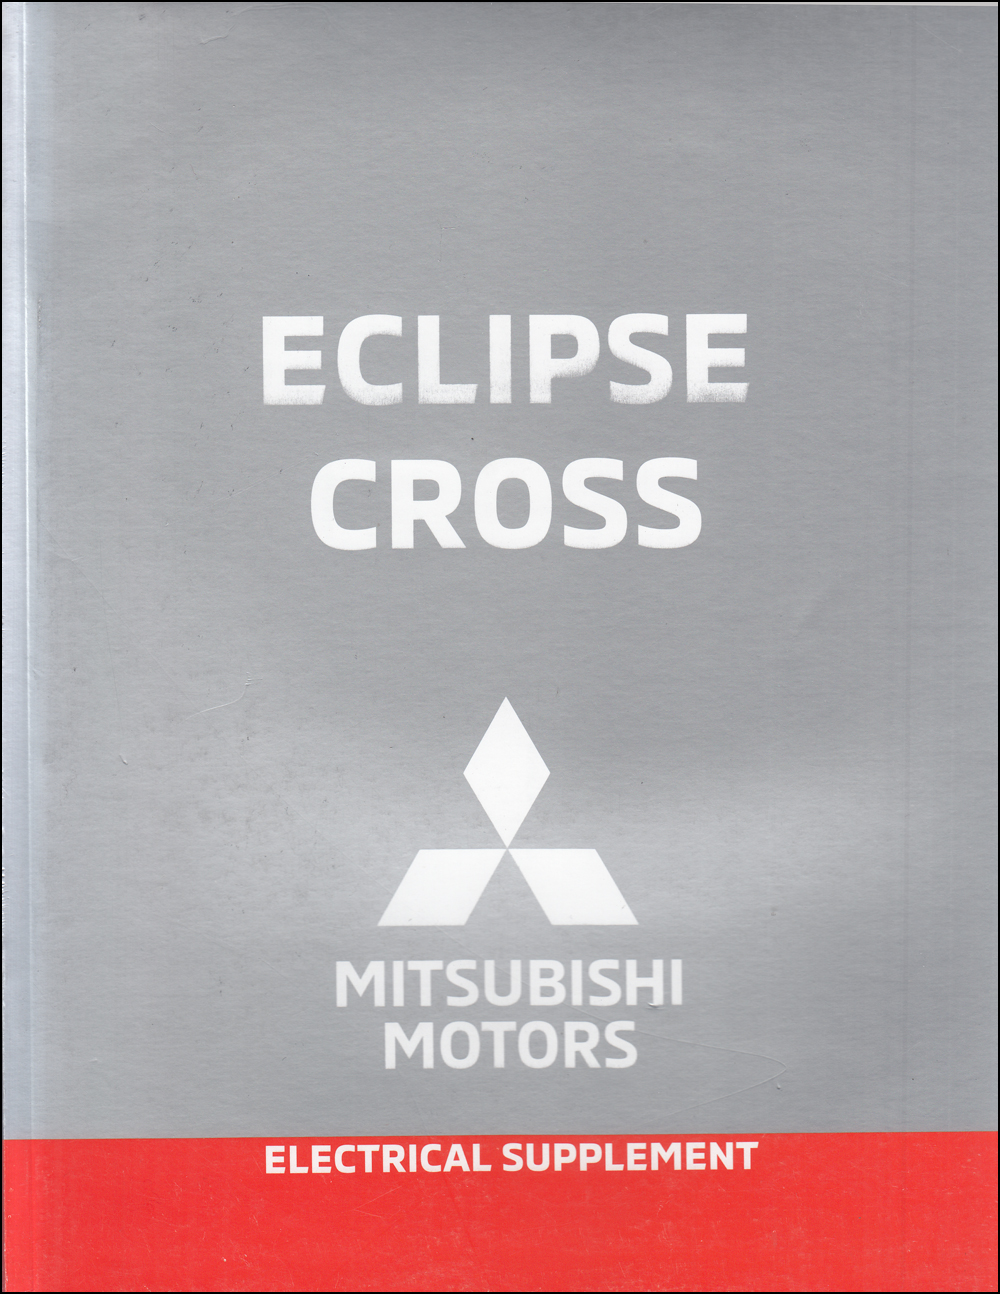 2020 Mitsubishi Eclipse Cross Wiring Diagram Manual Original